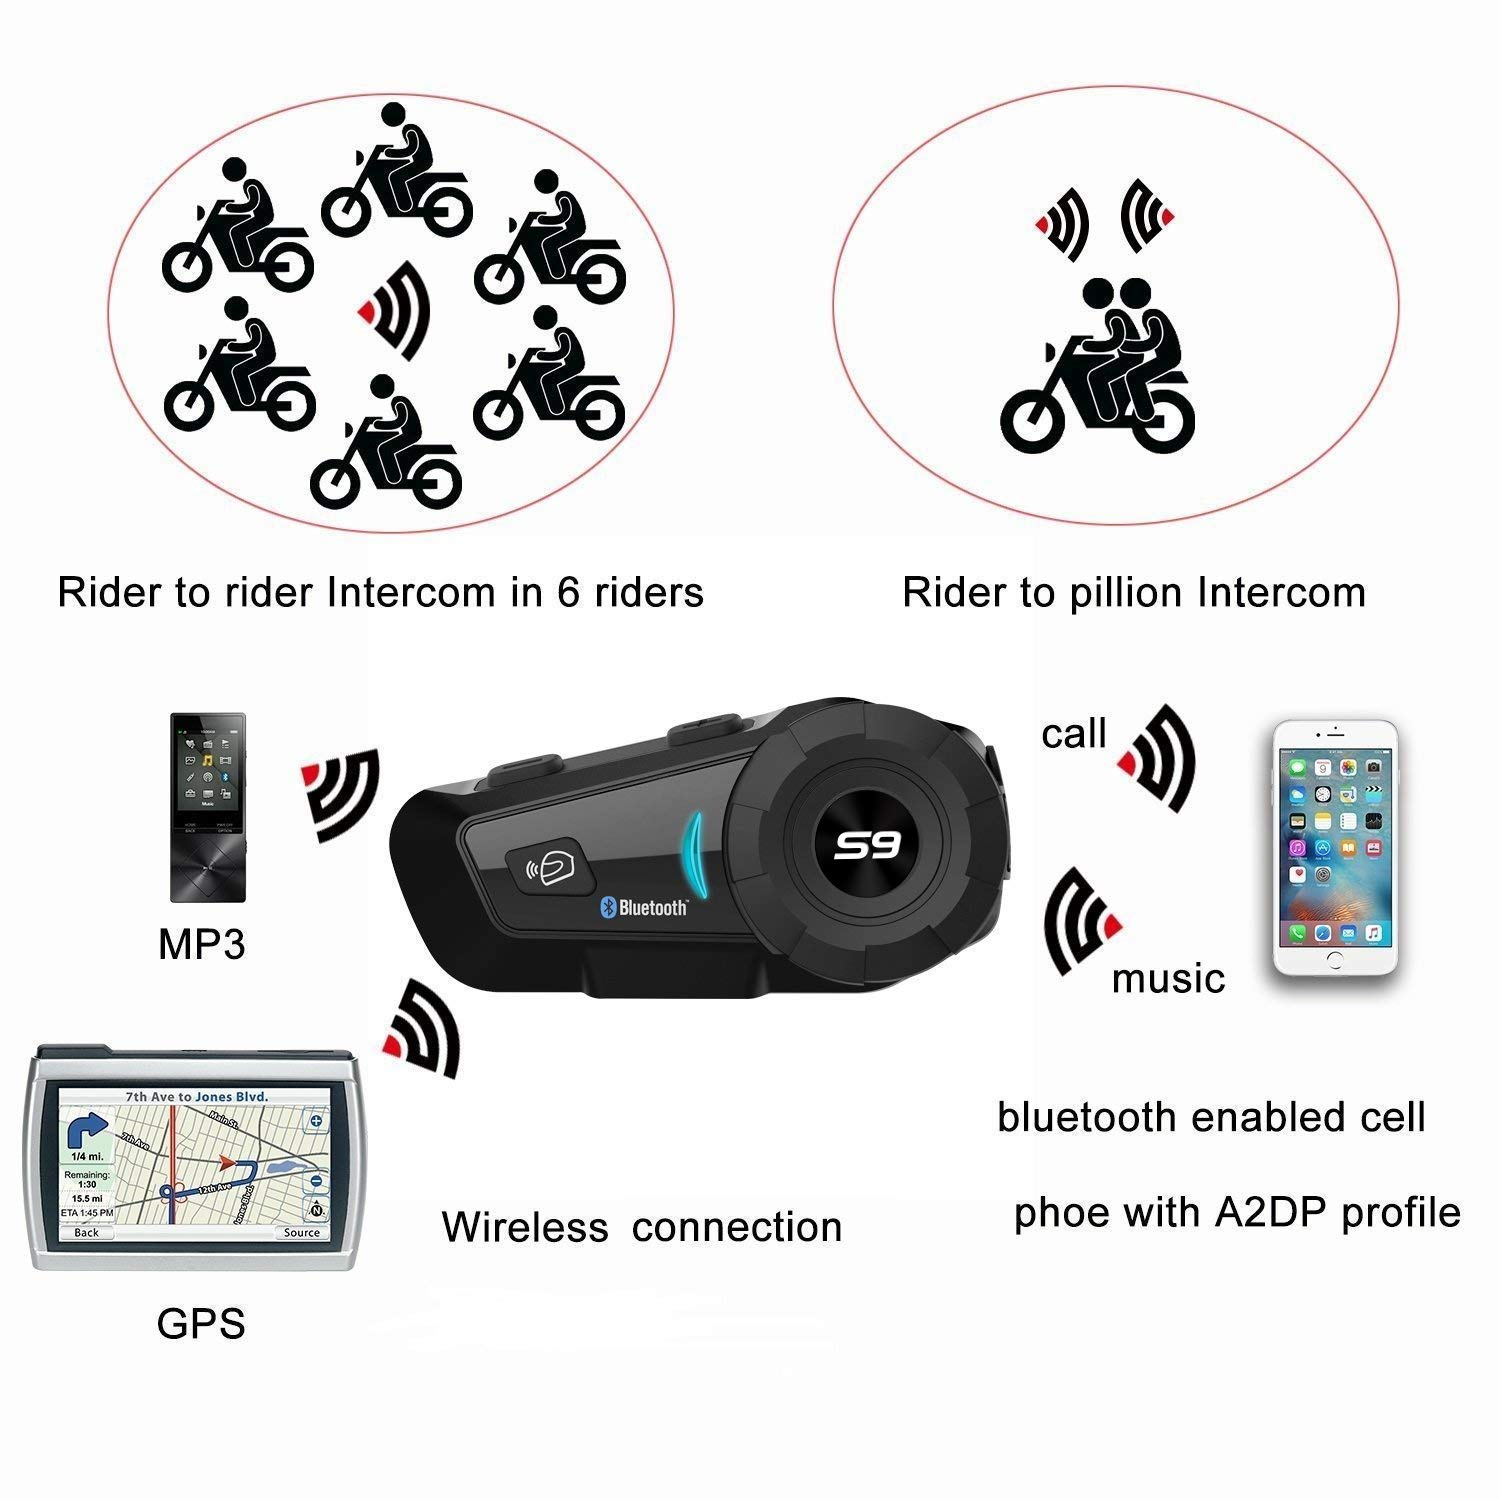 SCS ETC S-9 Intercom Communication Systems Kit Handsfree Calls Voice Command with Speakers Headphones for Motorbike Skiing Supports 6 Riders Group Intercom Motorcycle Bluetooth 4.1 Helmet Headset